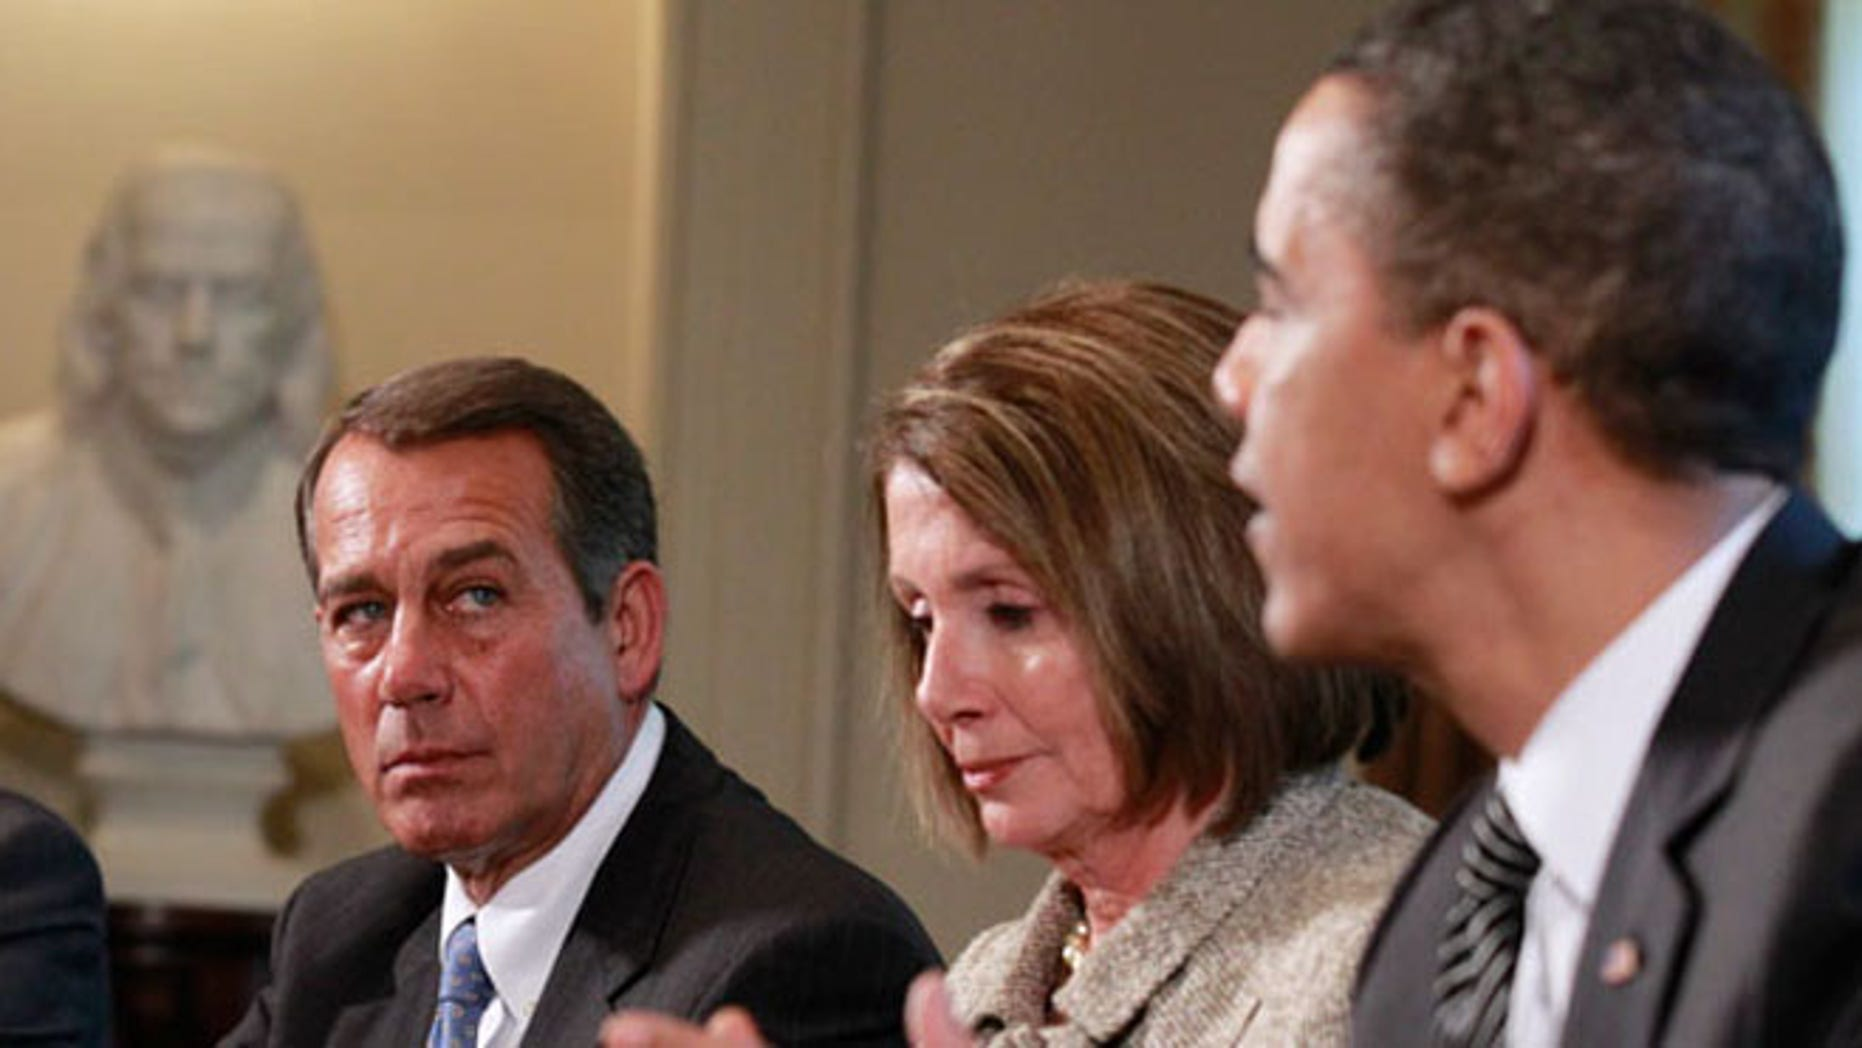 In this December 2010 file photo, President Obama is shown meeting with then-House Speaker Nancy Pelosi and then-House Republican Leader John Boehner.